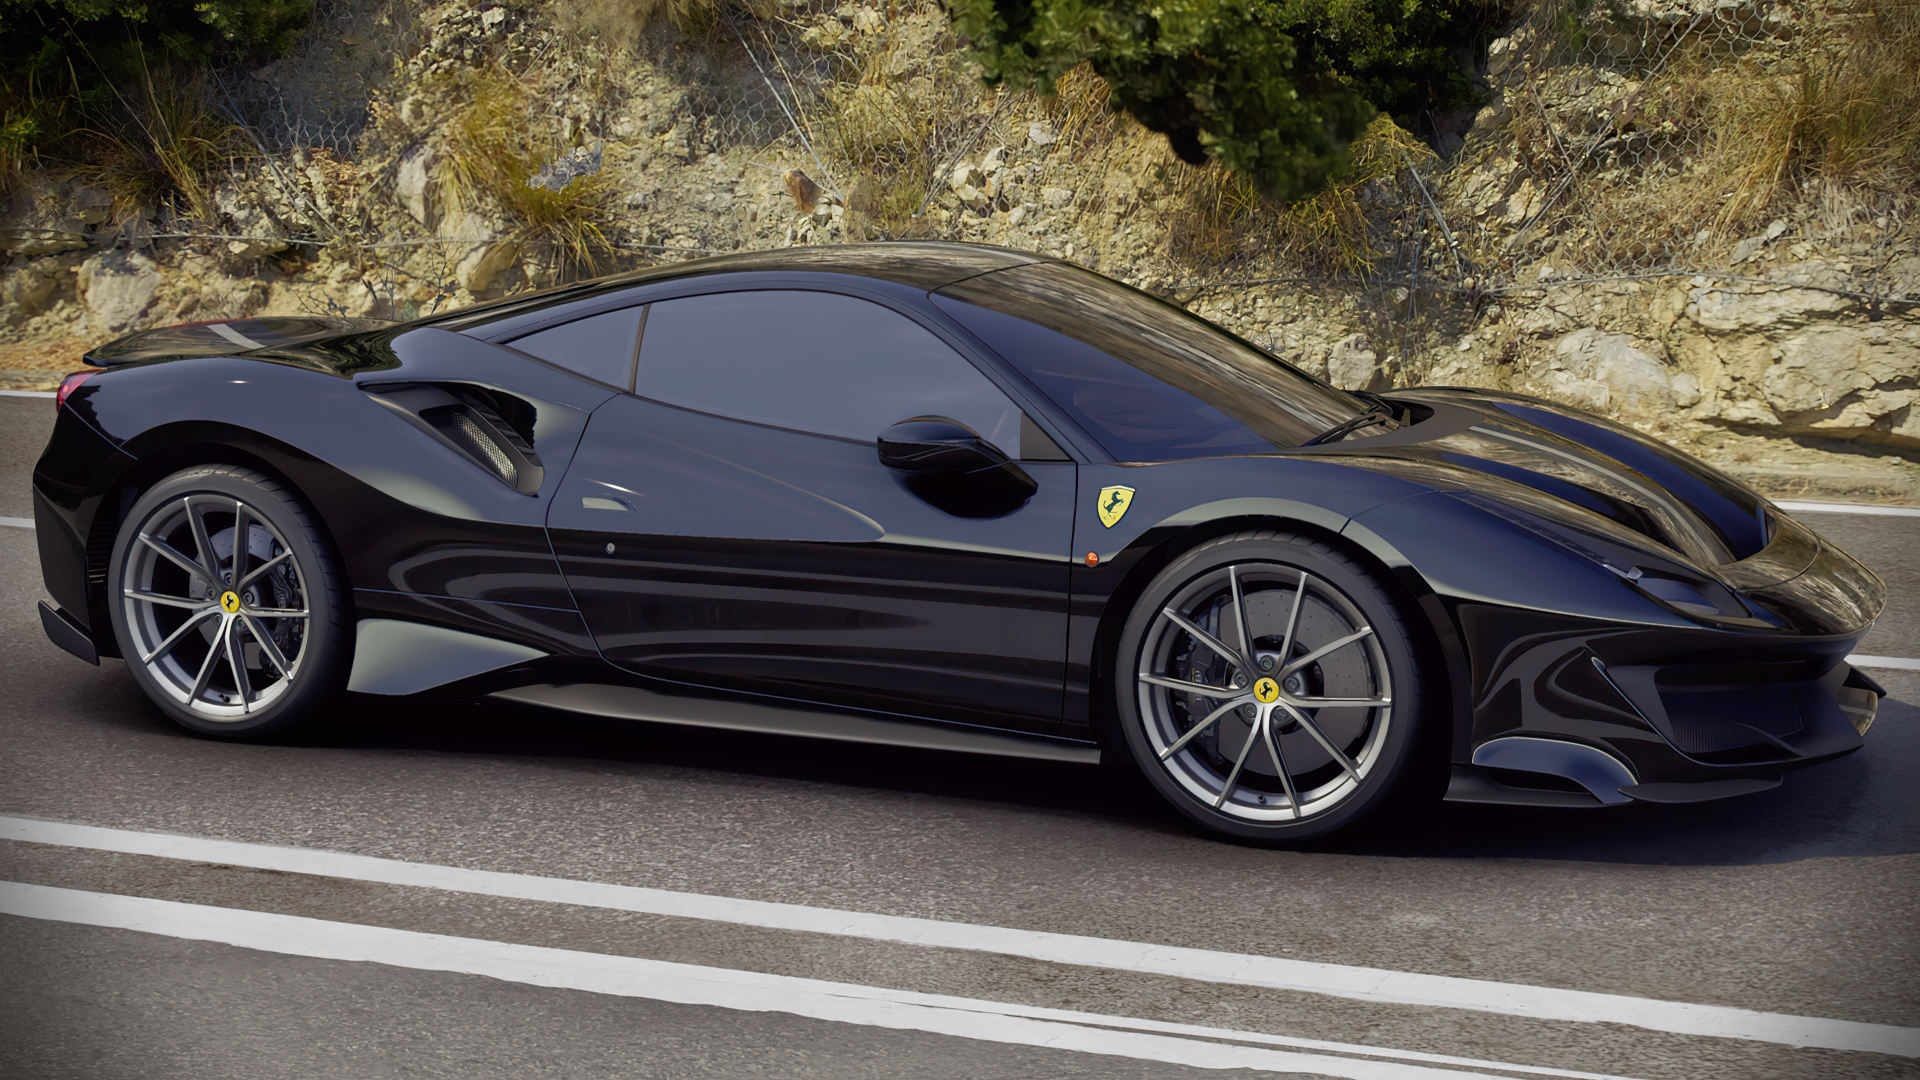 Ferrari 488 Pista 2019 Black Wallpaper Hd